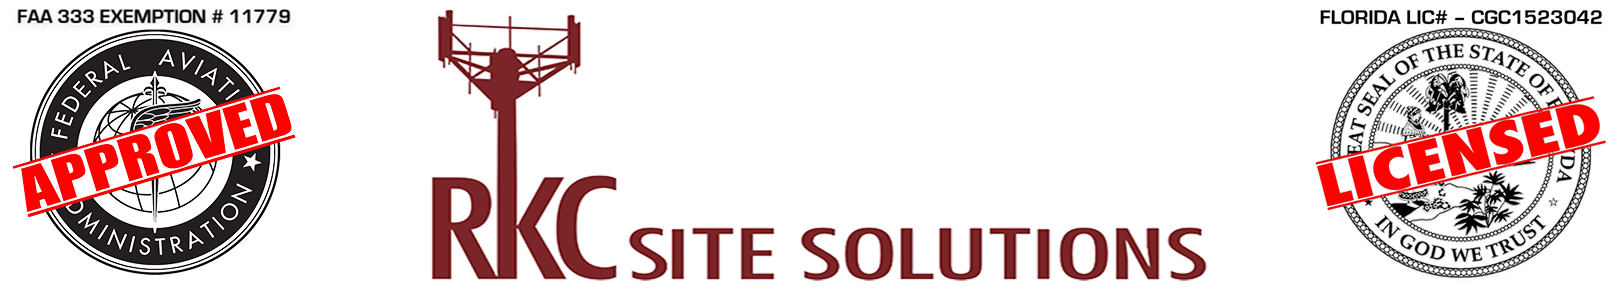 RKC Site Solutions LLC Orlando Florida